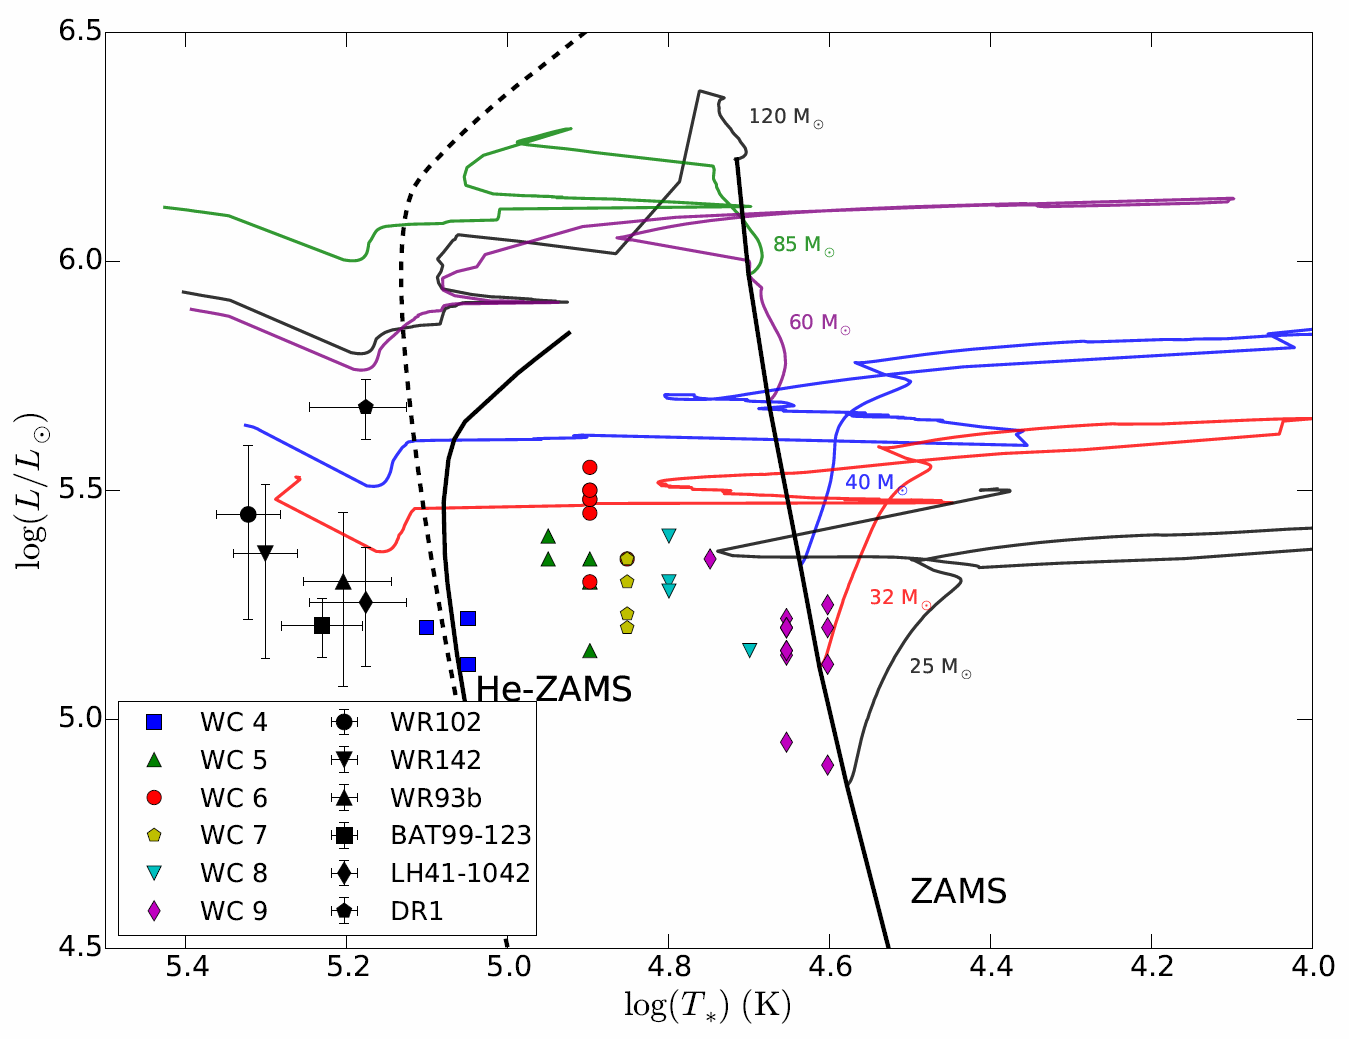 medium resolution of locations of several wo stars on the hertzsprung russell diagram also indicated are several wc stars i e carbon sequence wolf rayet stars